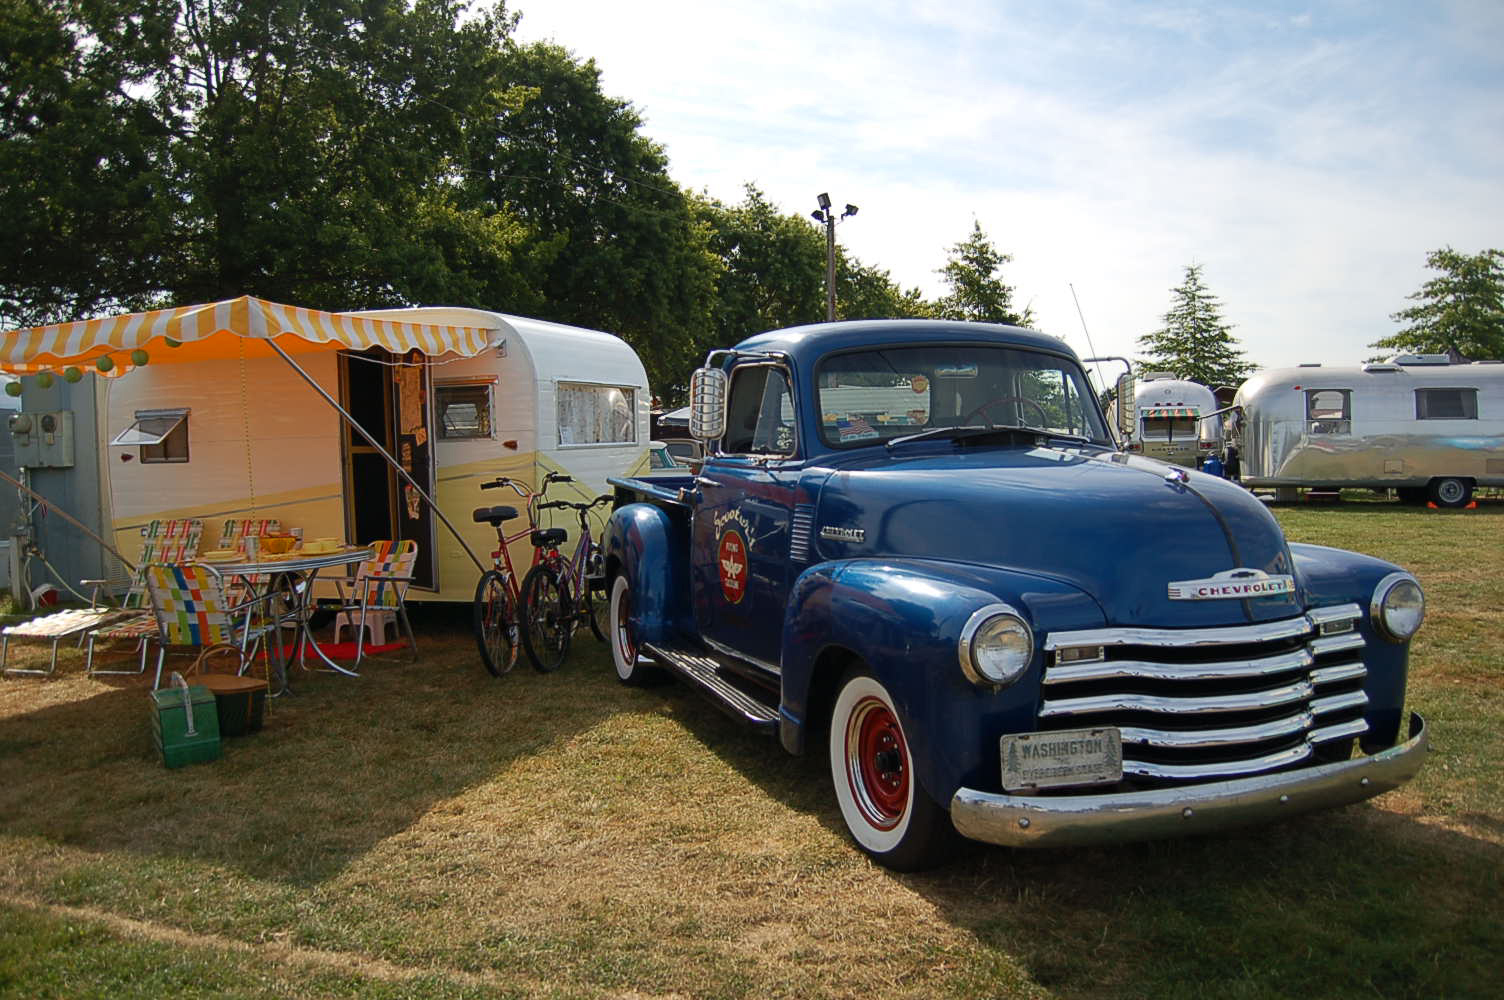 Classic 1958 Aloha Trailer Next To Vintage Chevy Pickup Truck Tow Vehicle